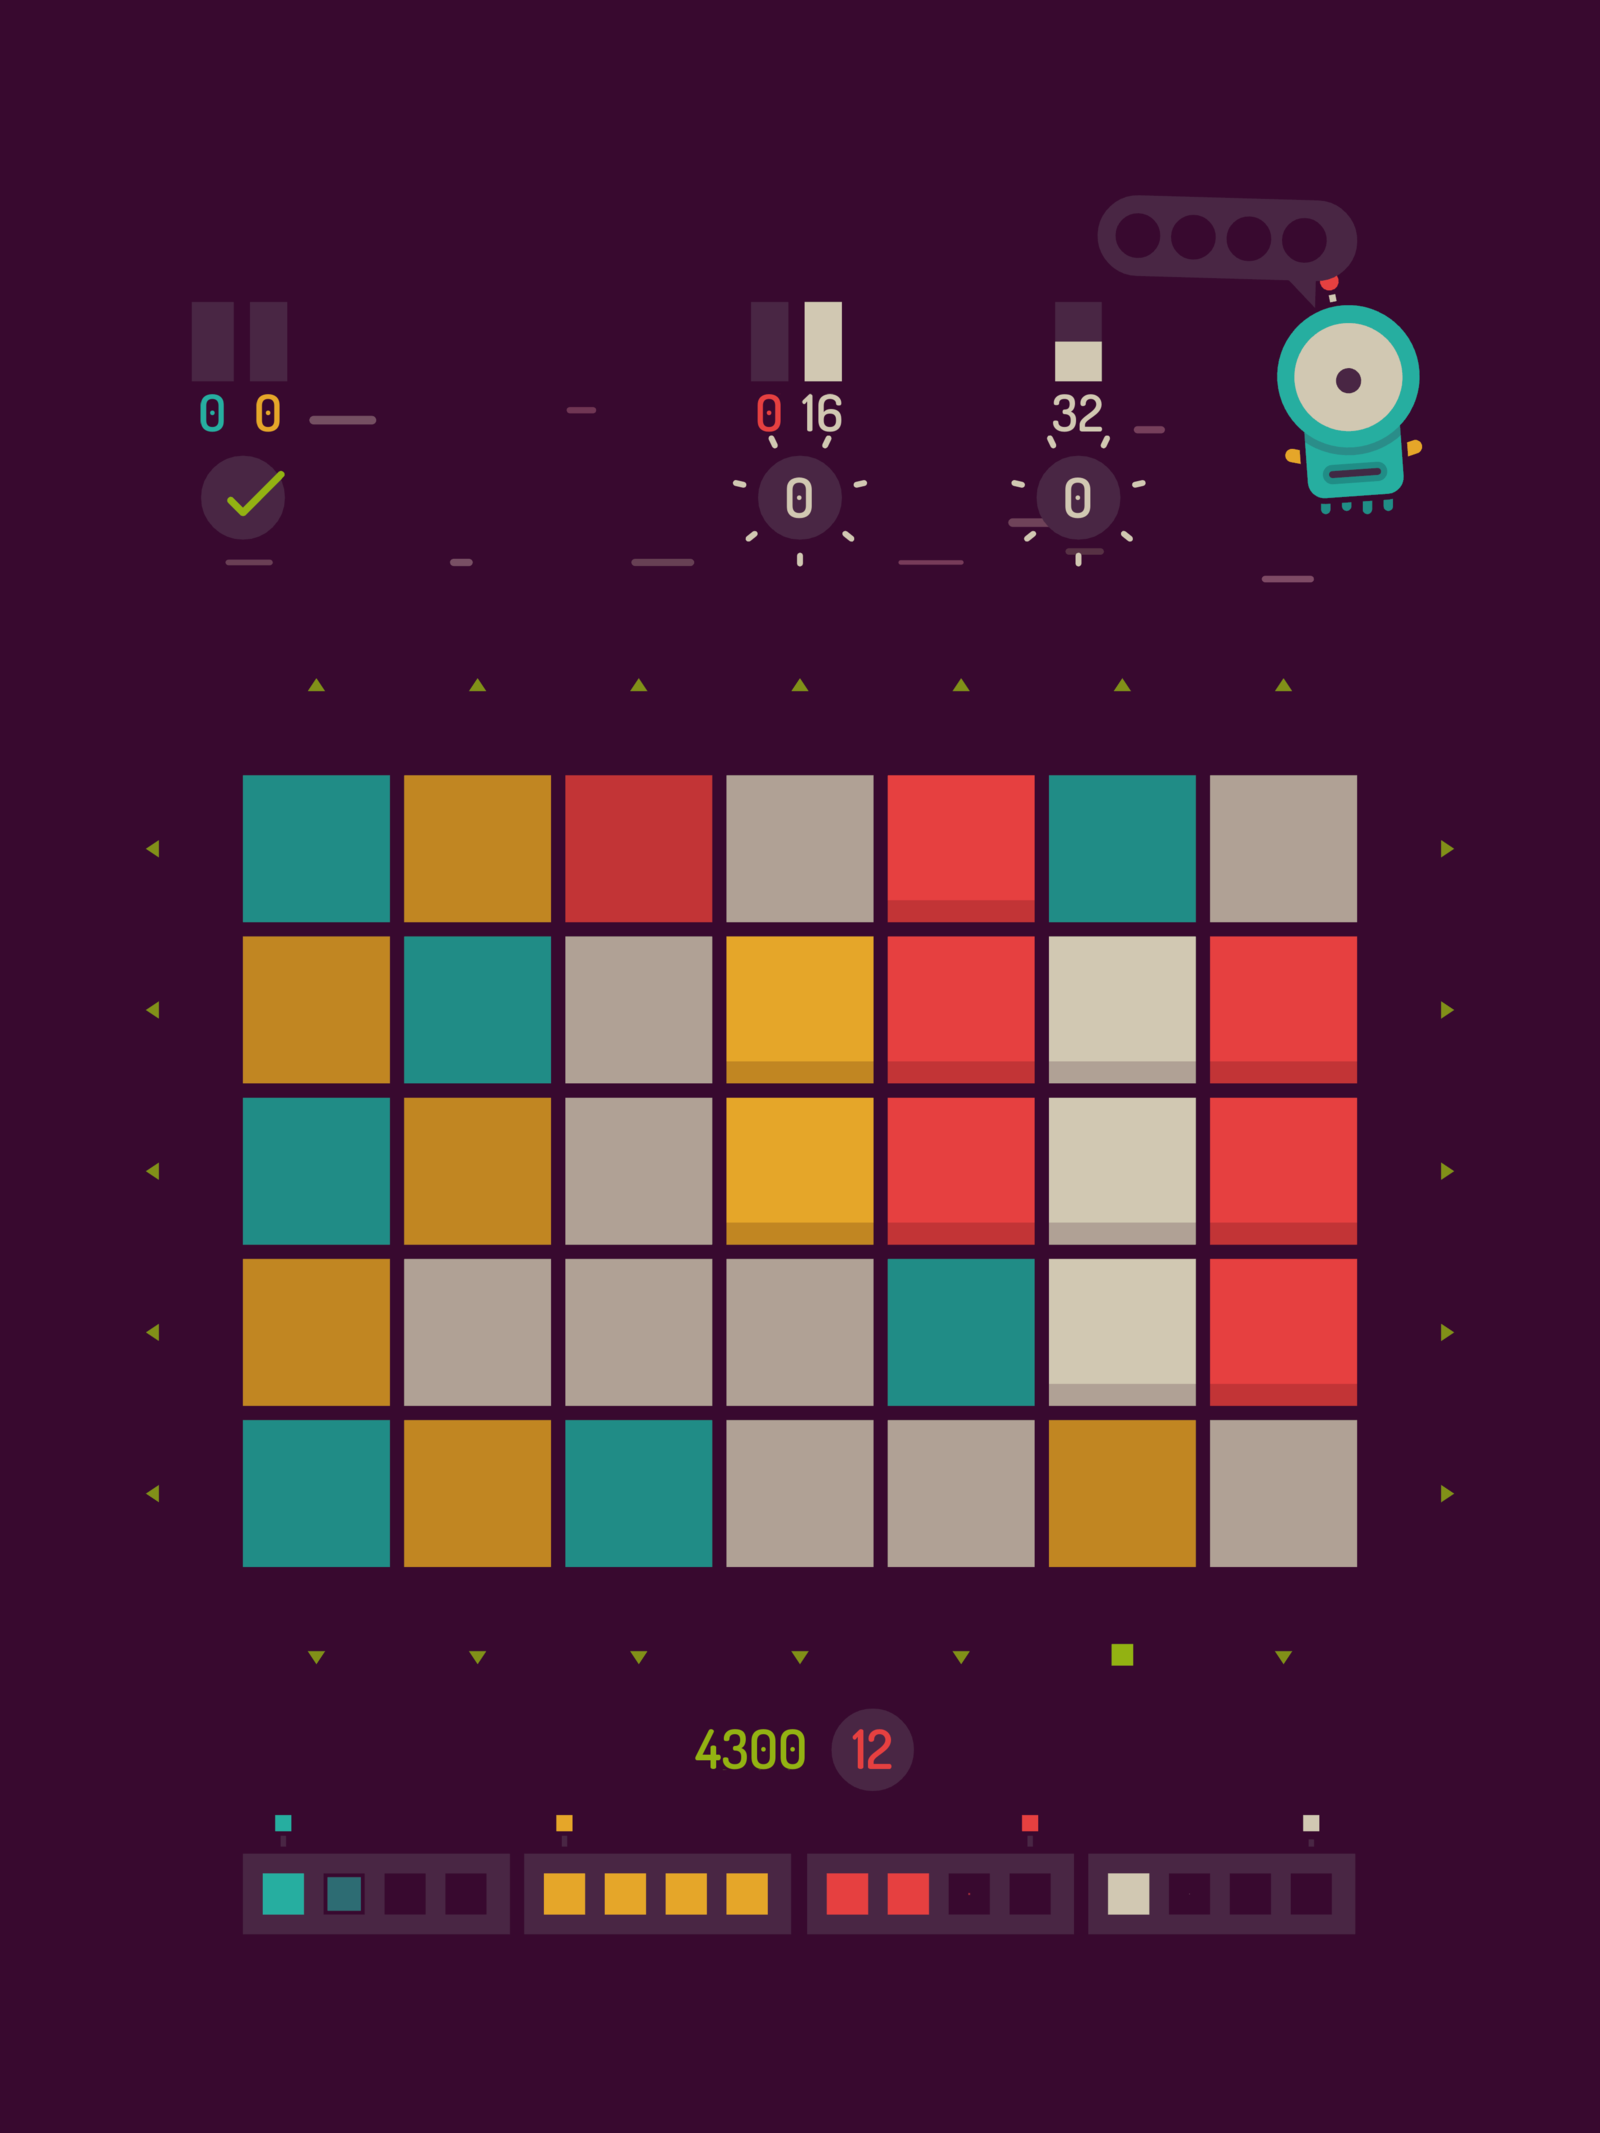 Game that challenges you to clear blocks in a certain set of moves